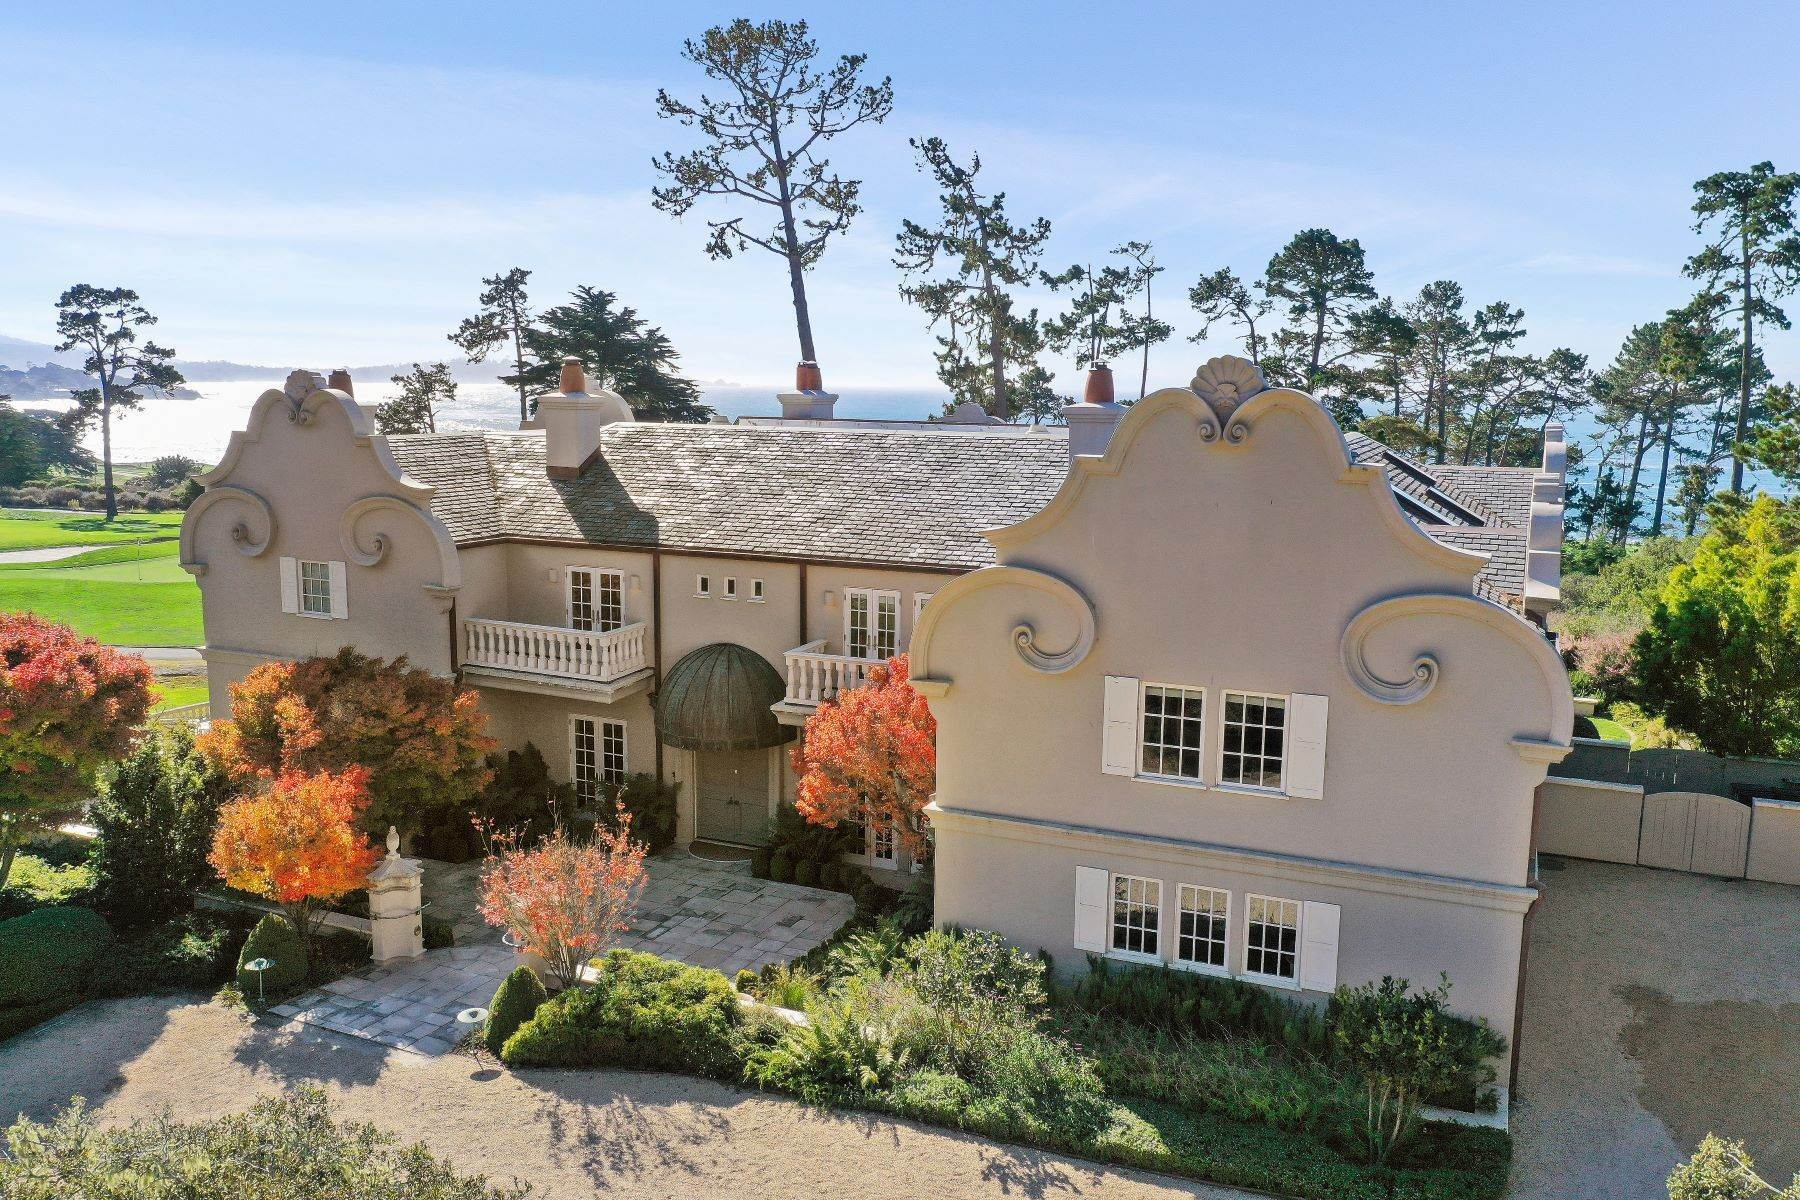 Single Family Homes for Sale at Sophisticated Pebble Beach Estate 3410 17 Mile Drive Pebble Beach, California 93953 United States